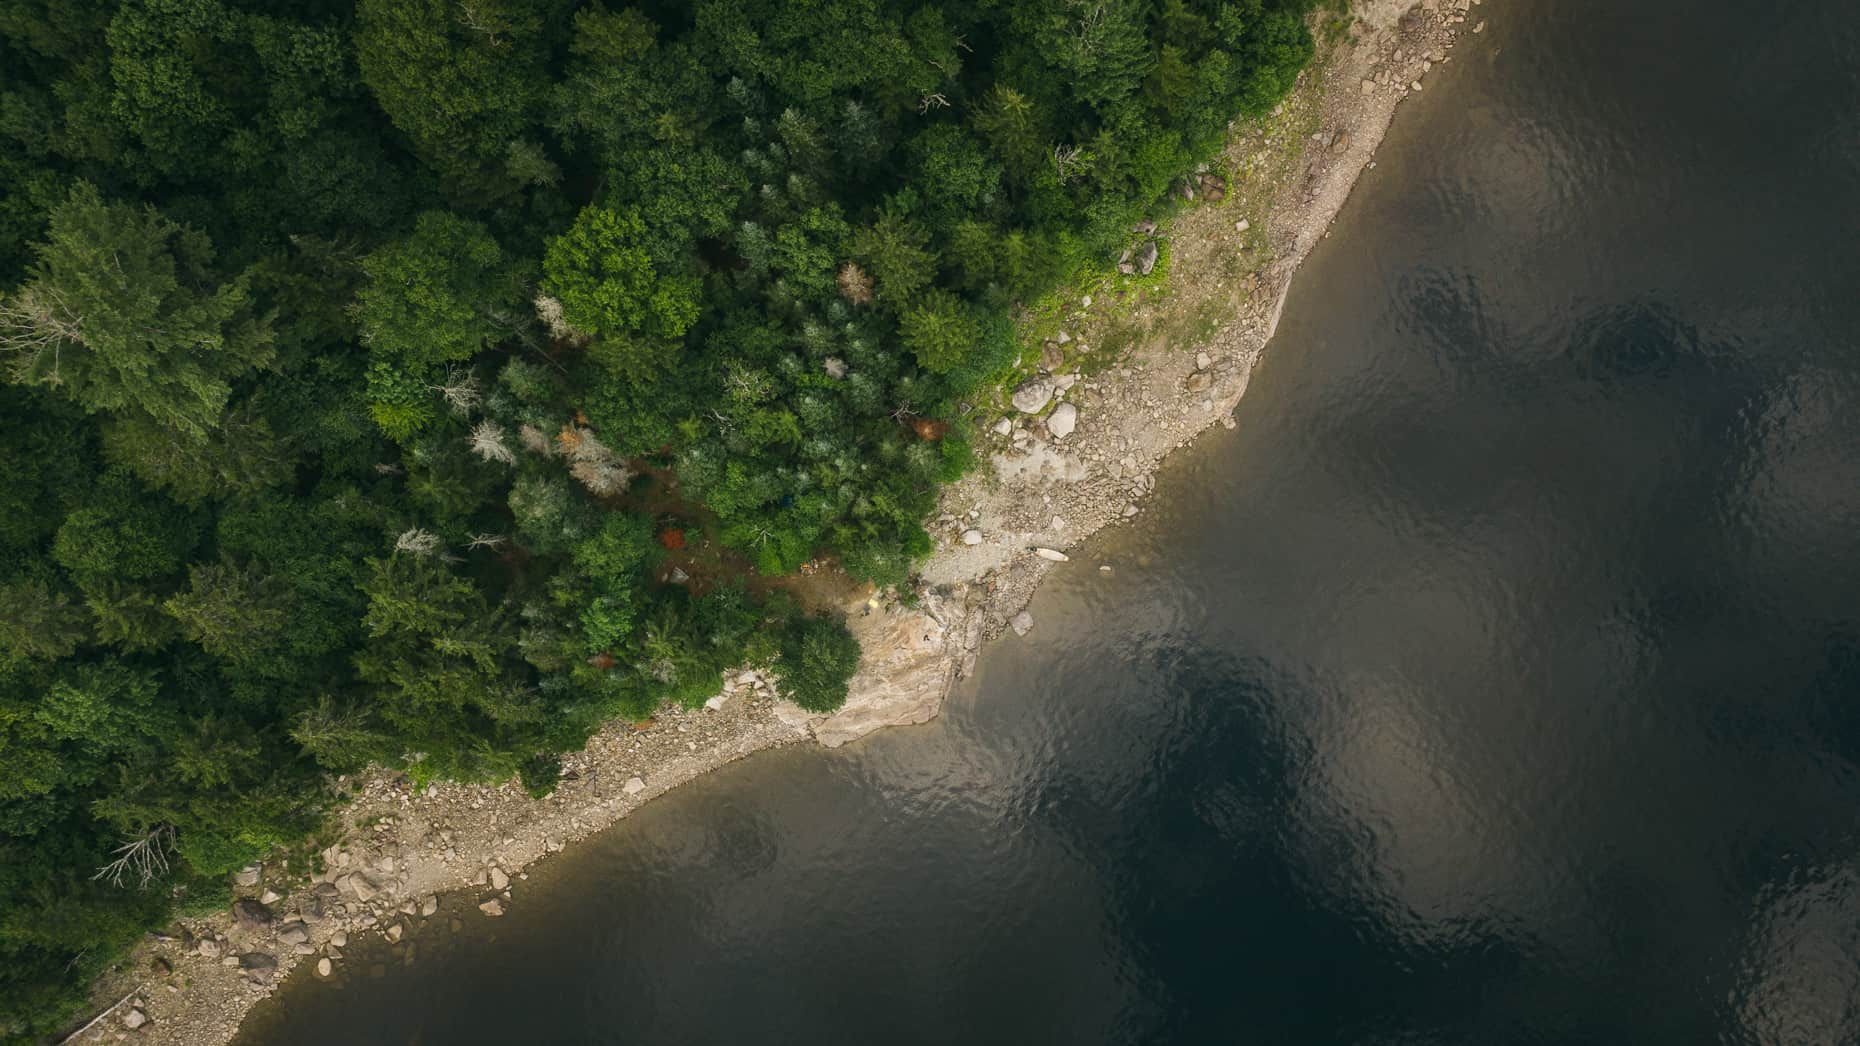 Top down view of Beaver Island on Aziscohos Lake